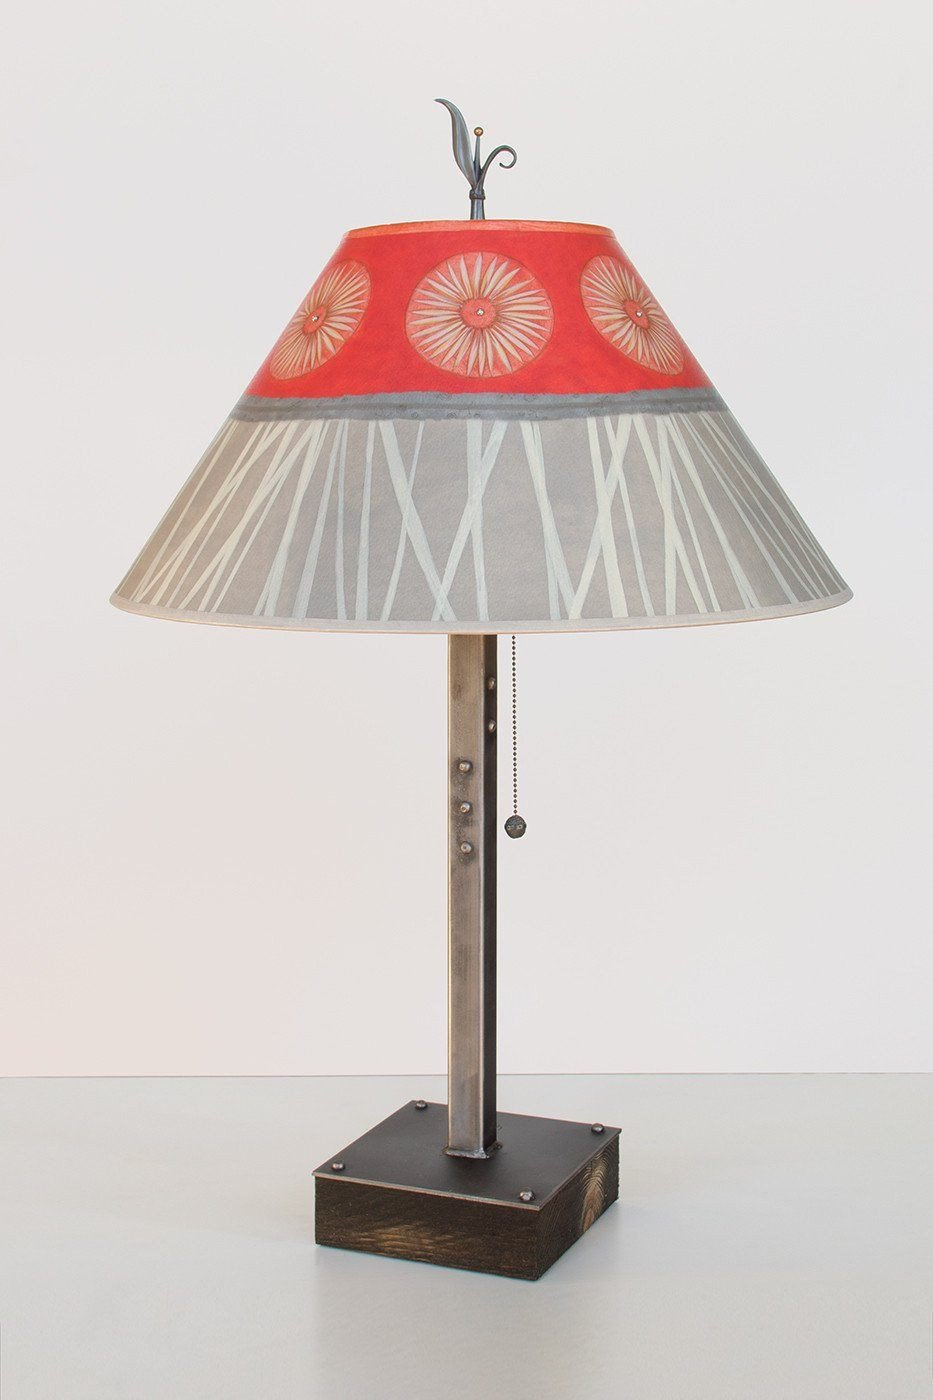 Steel Table Lamp on Wood with Large Conical Shade in Tang